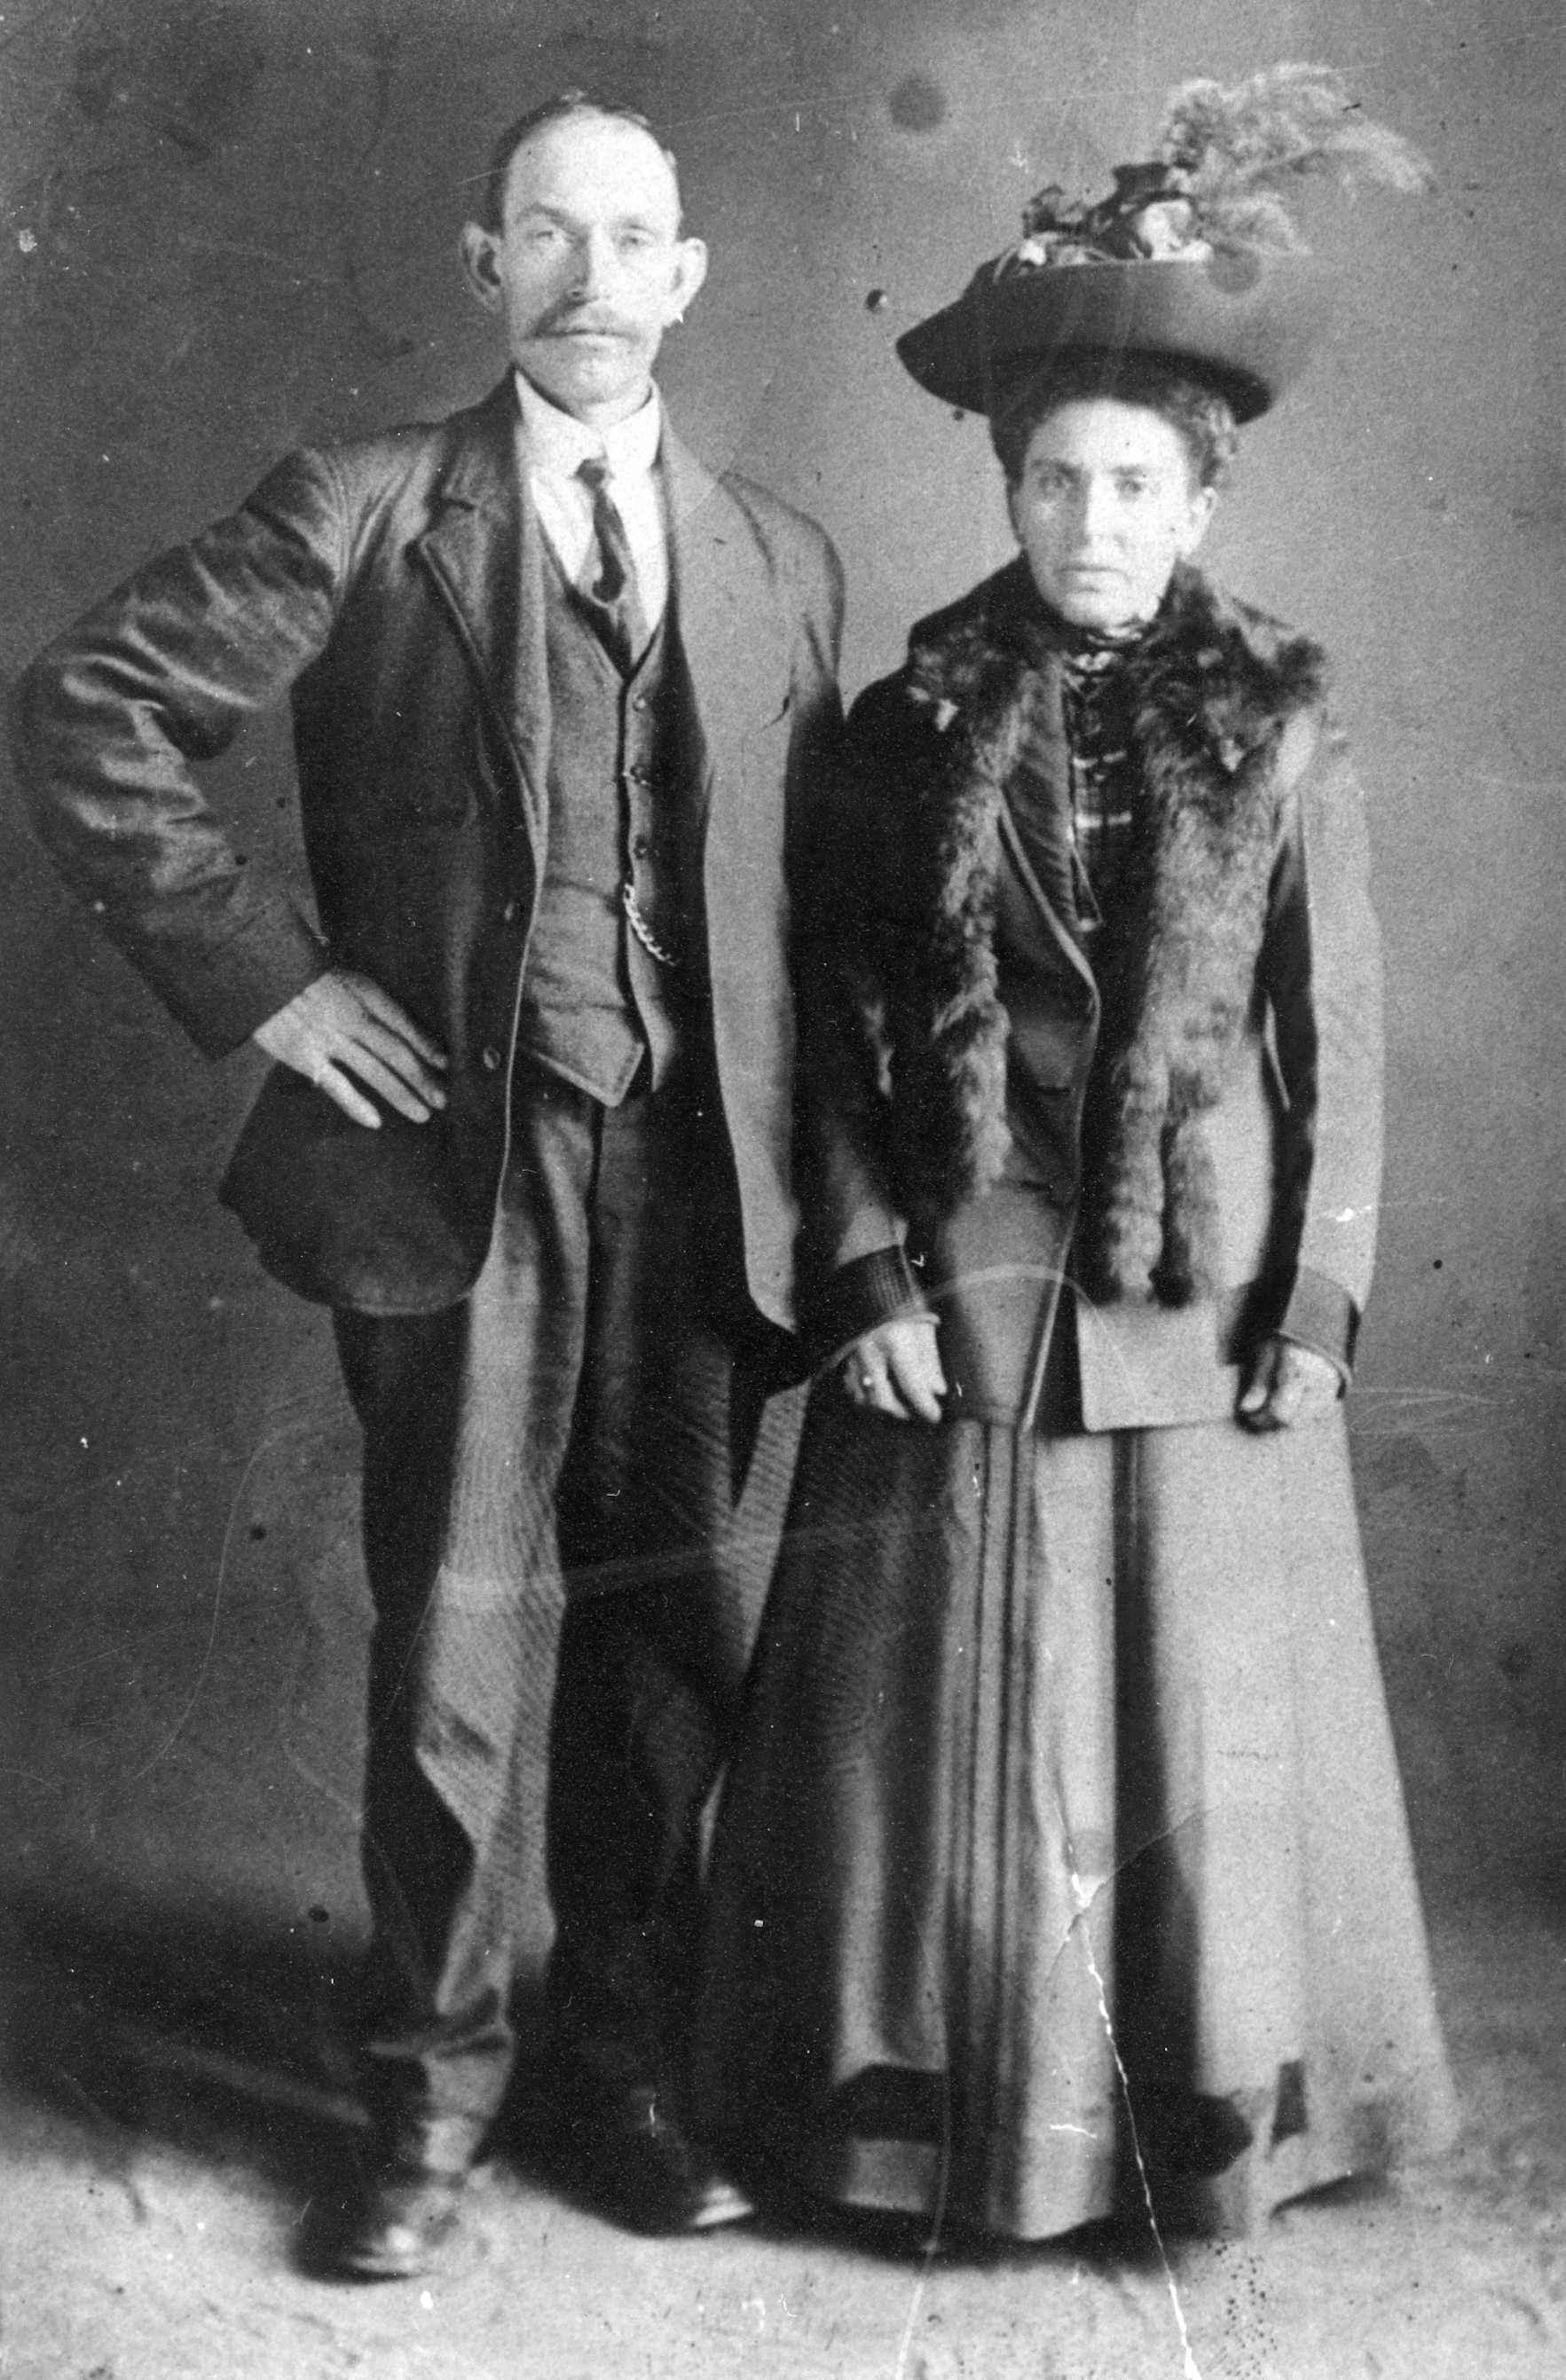 Family Photo– Here is a photo of Antonio's parents. The names are listed under the photo.